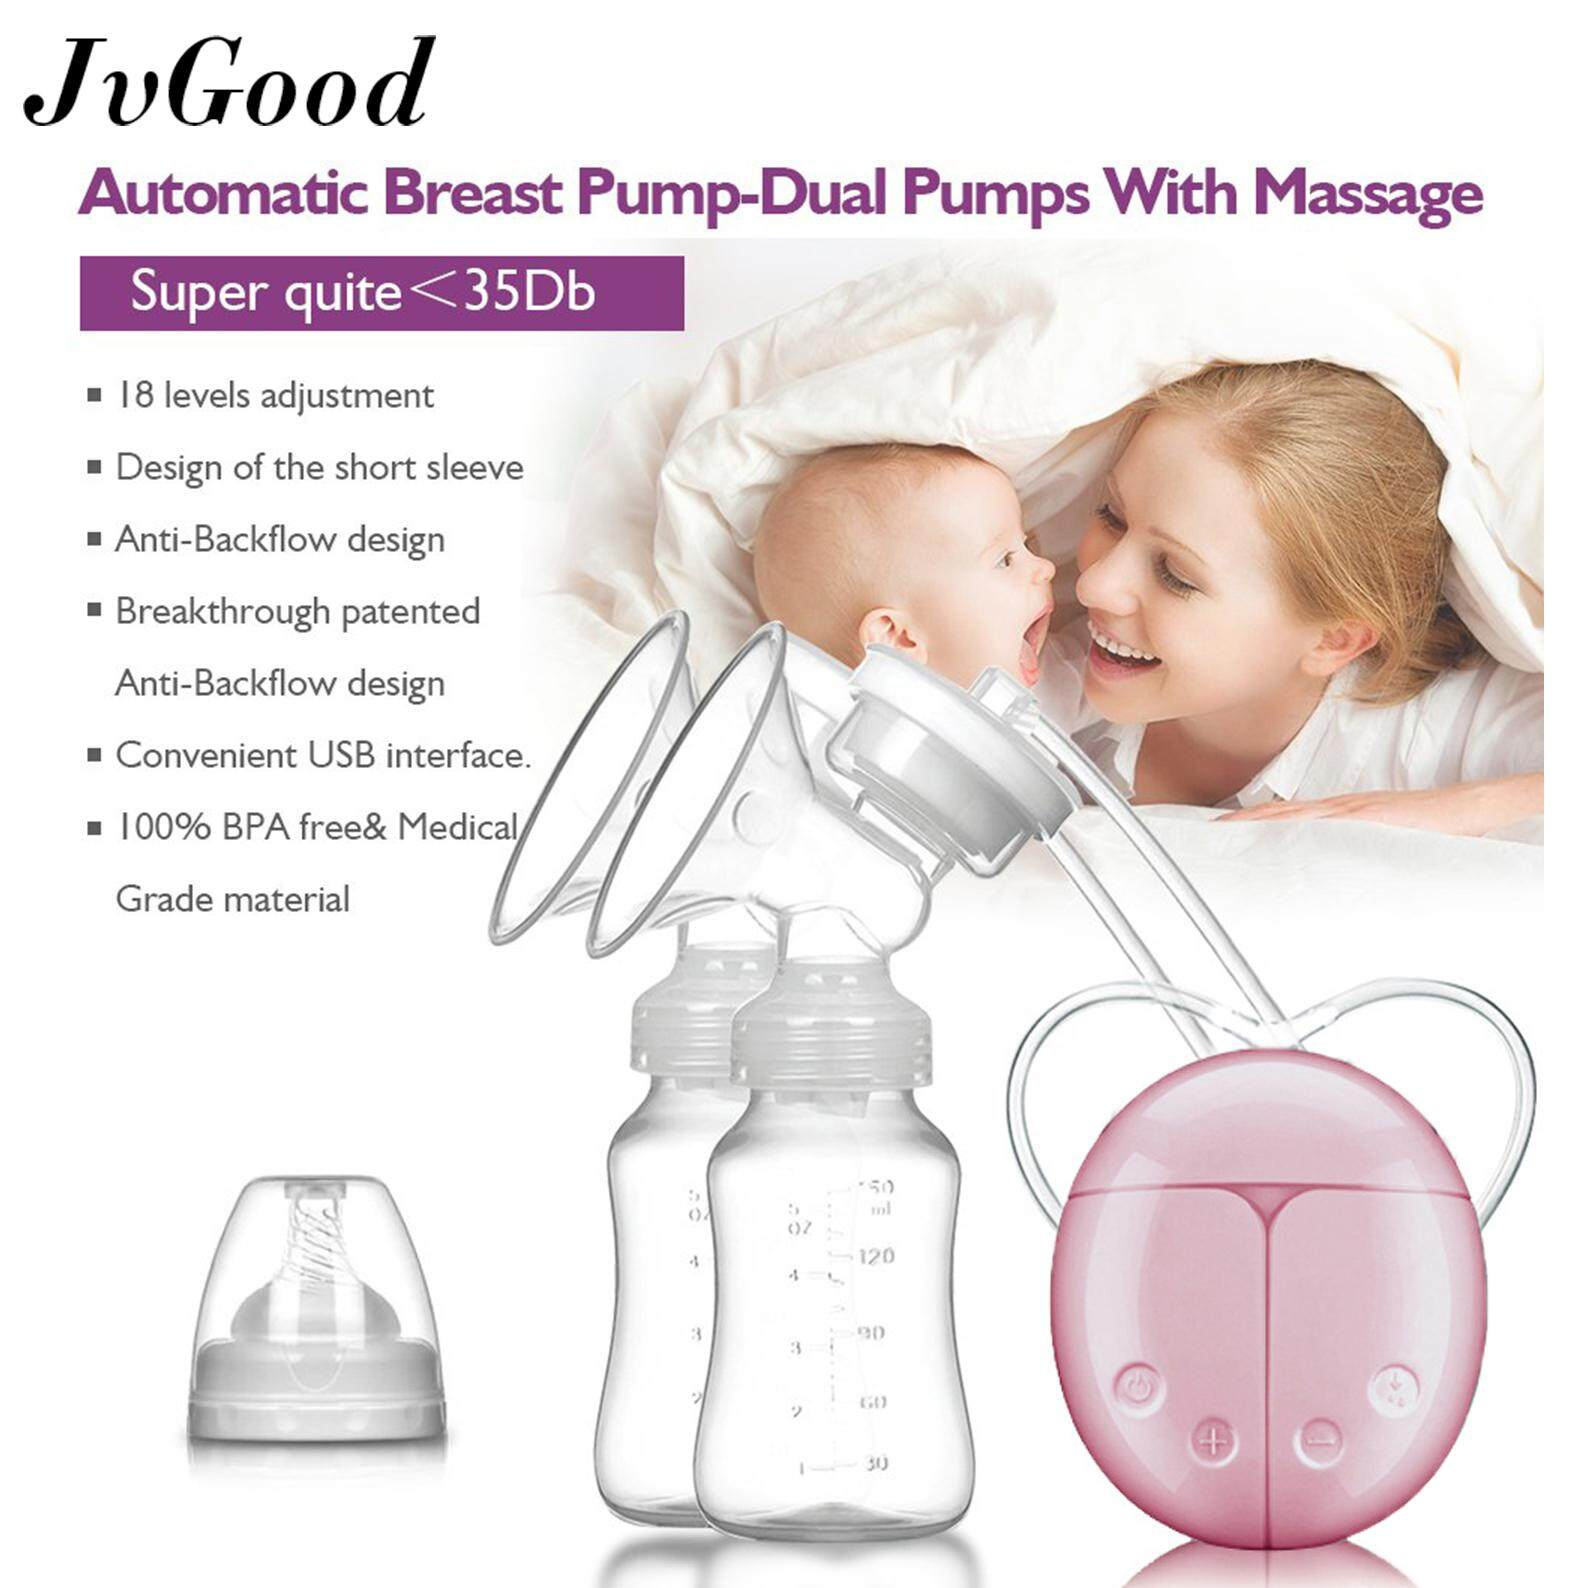 Jvgood Breast Pump Double Electronic Breastpump Manual Breast Pump Portable Food-Grade Silicone Breast Pump Milk Collector With 2 Bottles By Jvgood.